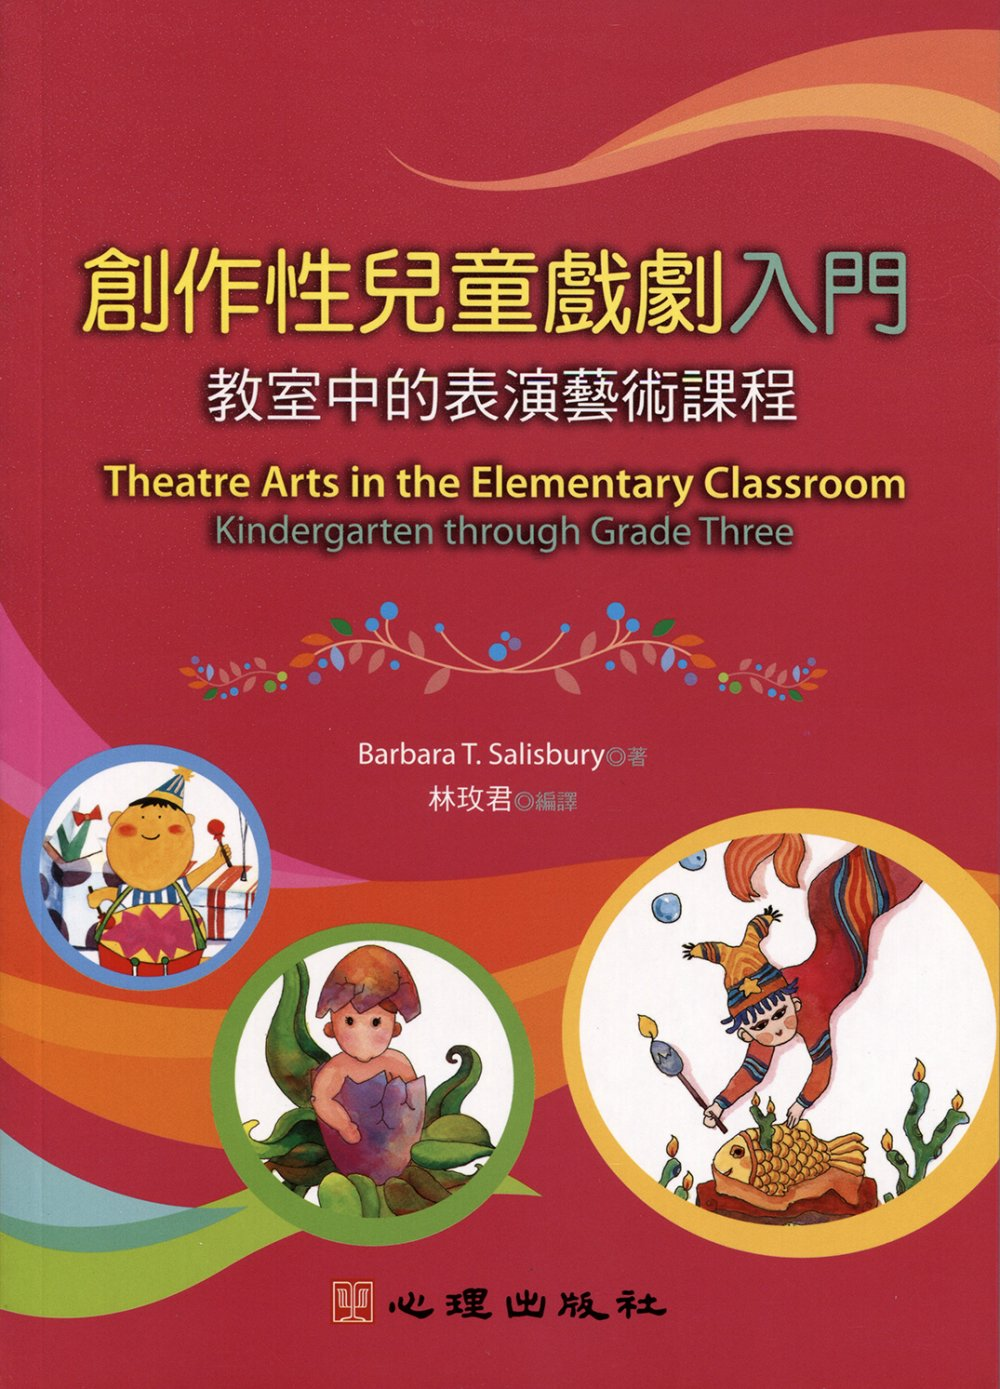 創作性兒童戲劇入門 : Kindergarten through Grade Three = Theatre Arts in the Elementary Classroom